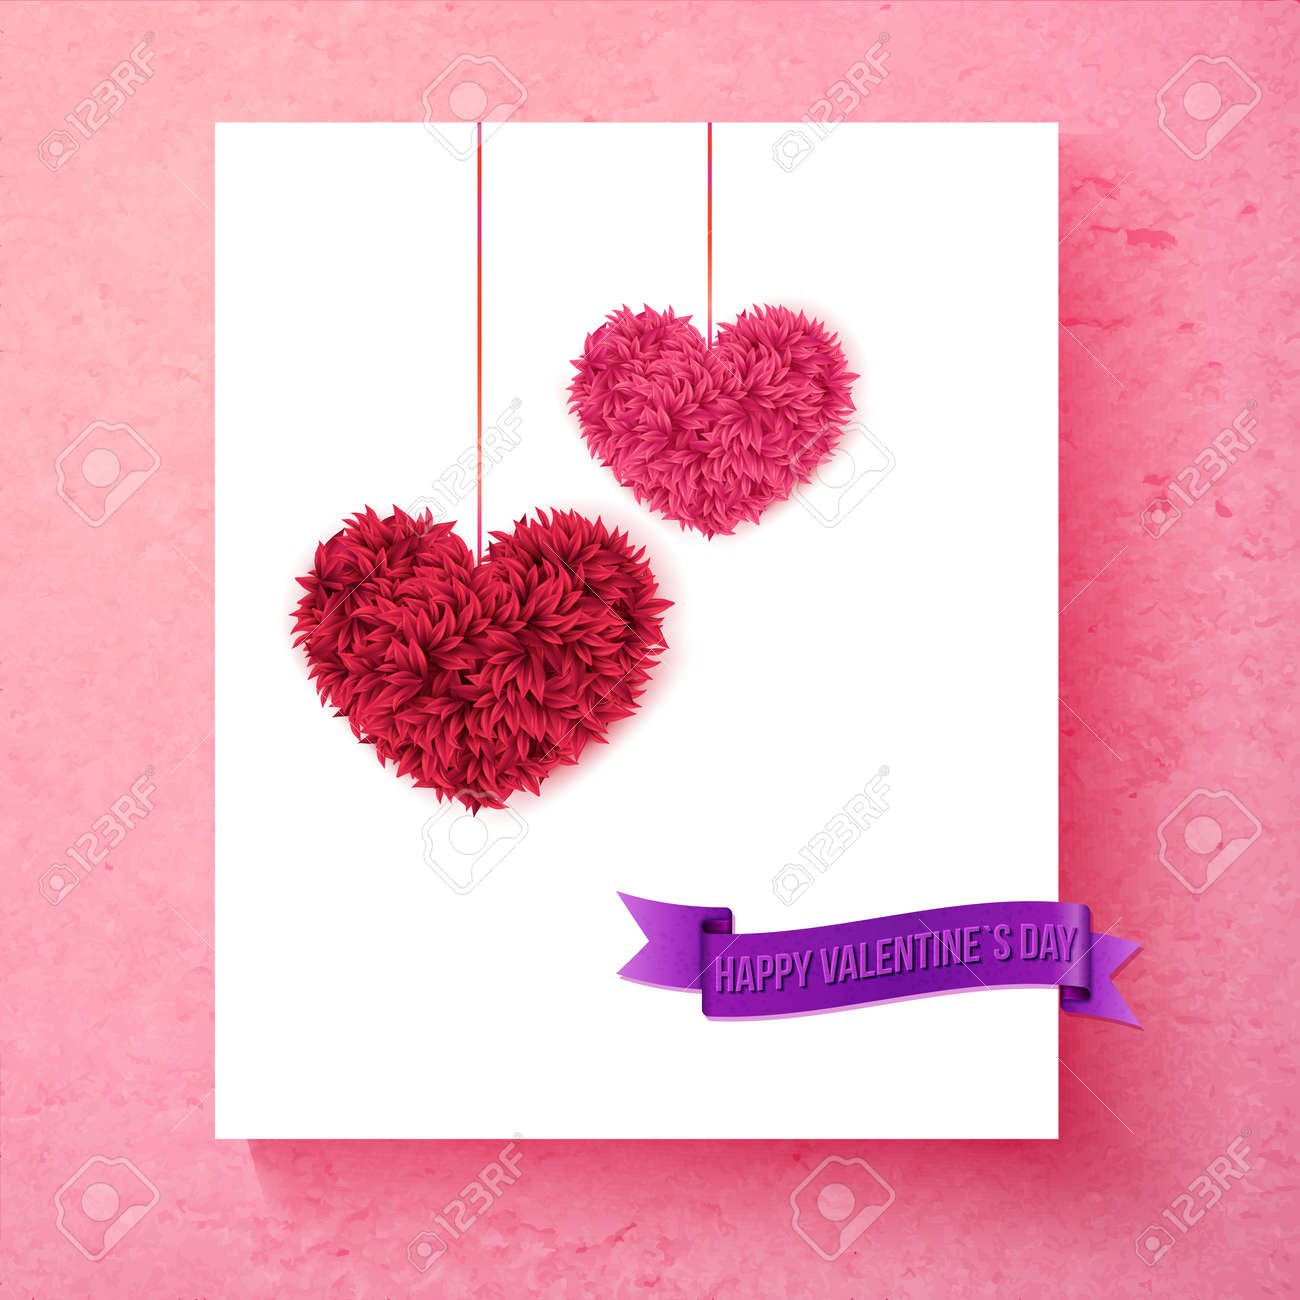 loving tender valentine card design with colorful pink and red